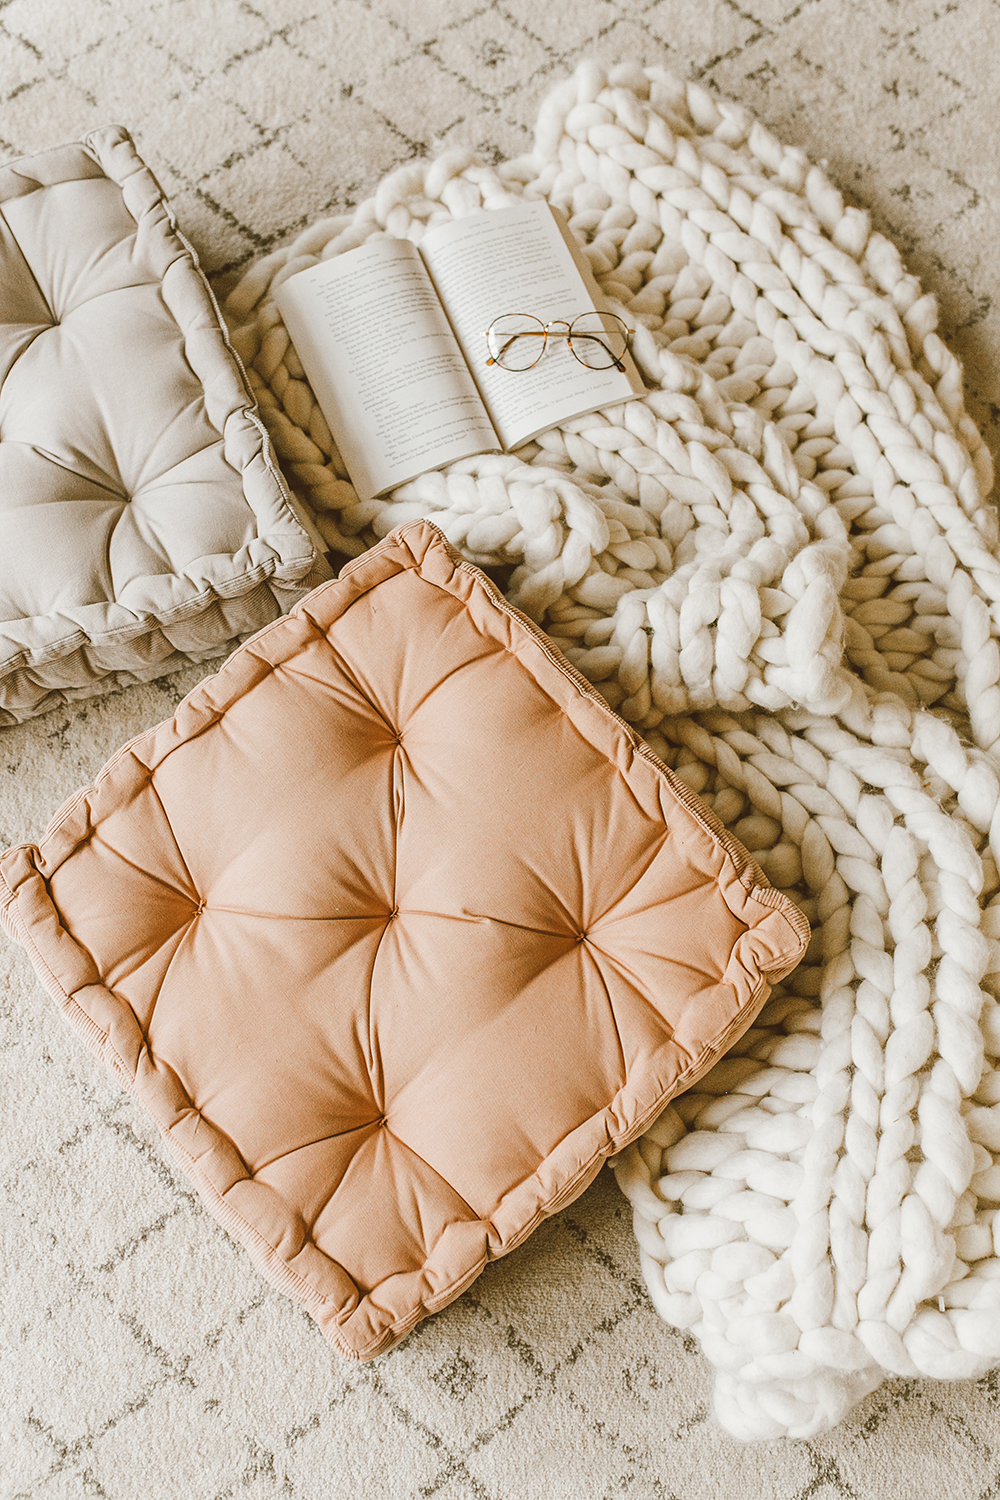 livvyland-blog-olivia-watson-austin-texas-lifestyle-blog-urban-outfitters-home-decor-bohemian-cozy-floor-cushions-rose-blush-2